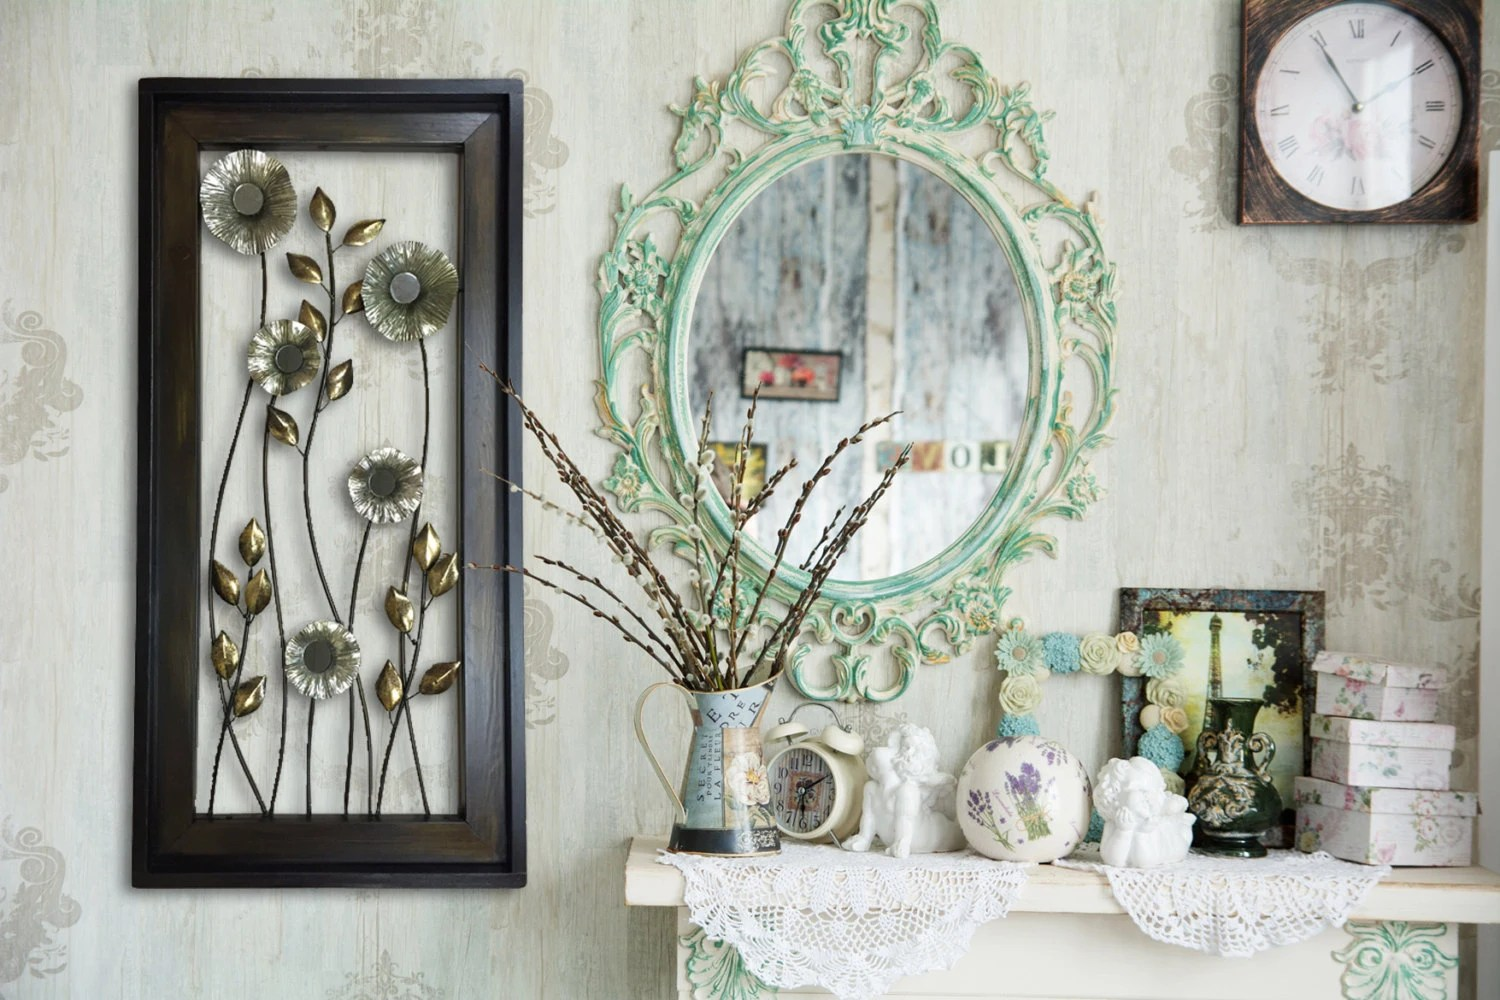 METAL Wall ART Wood Framed FLOWERS Mirrors Home Decor Large